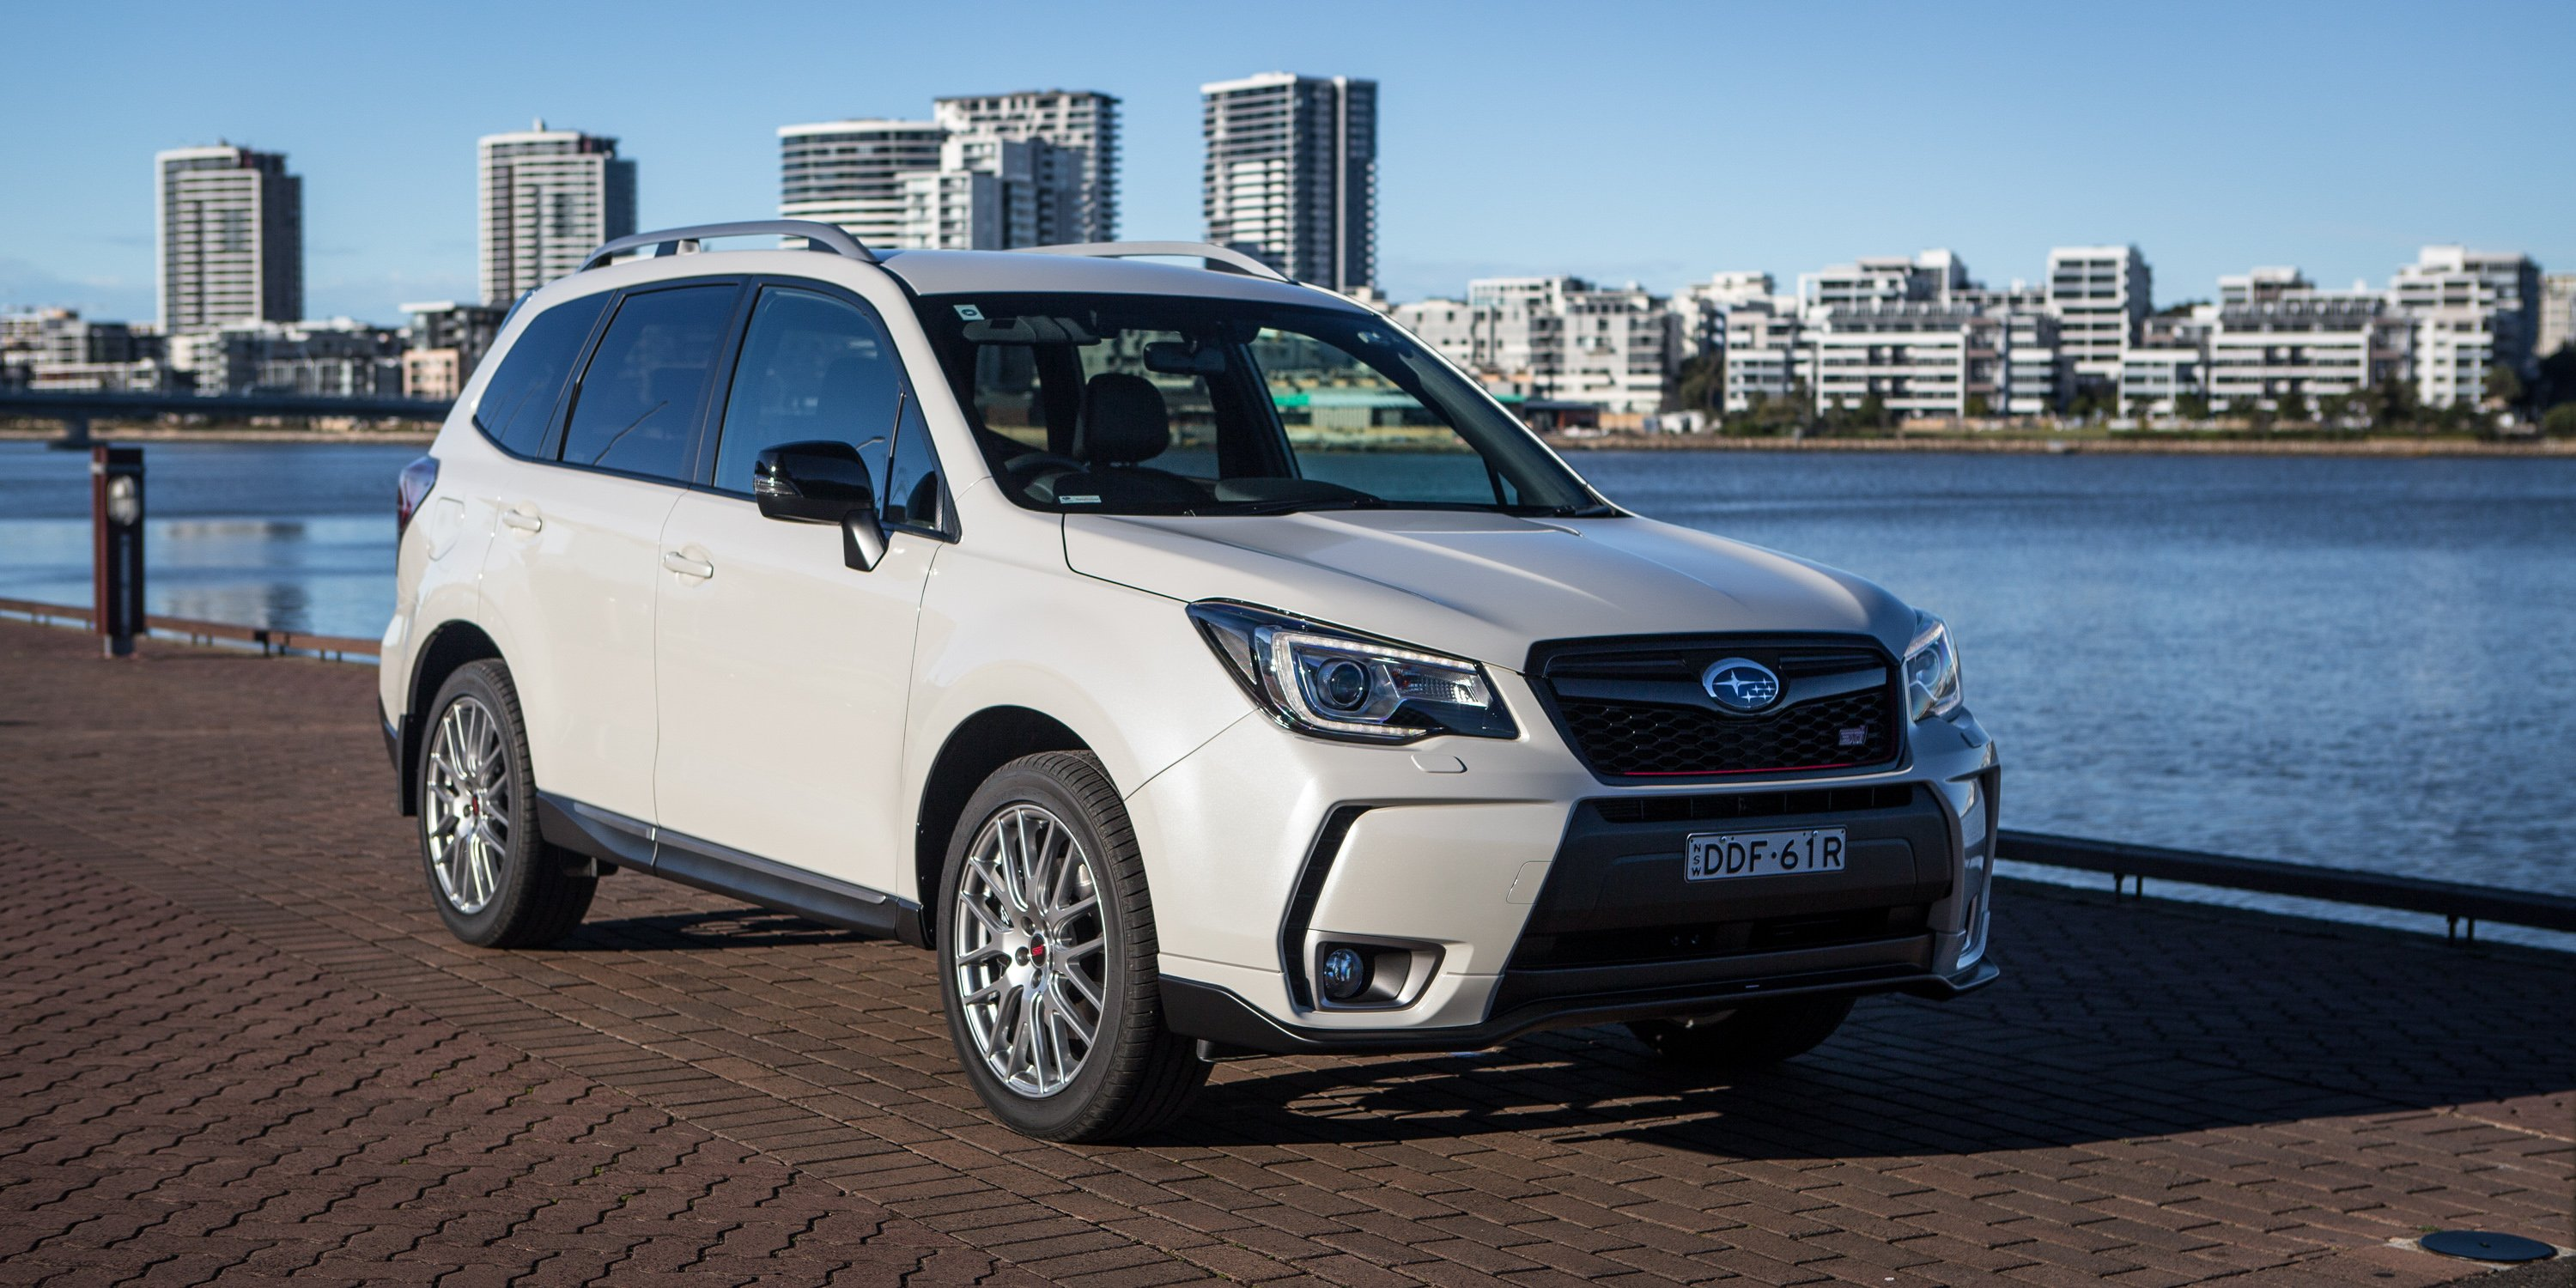 Used 2015 subaru forester review ratings edmunds autos post for Subaru forester paint job cost